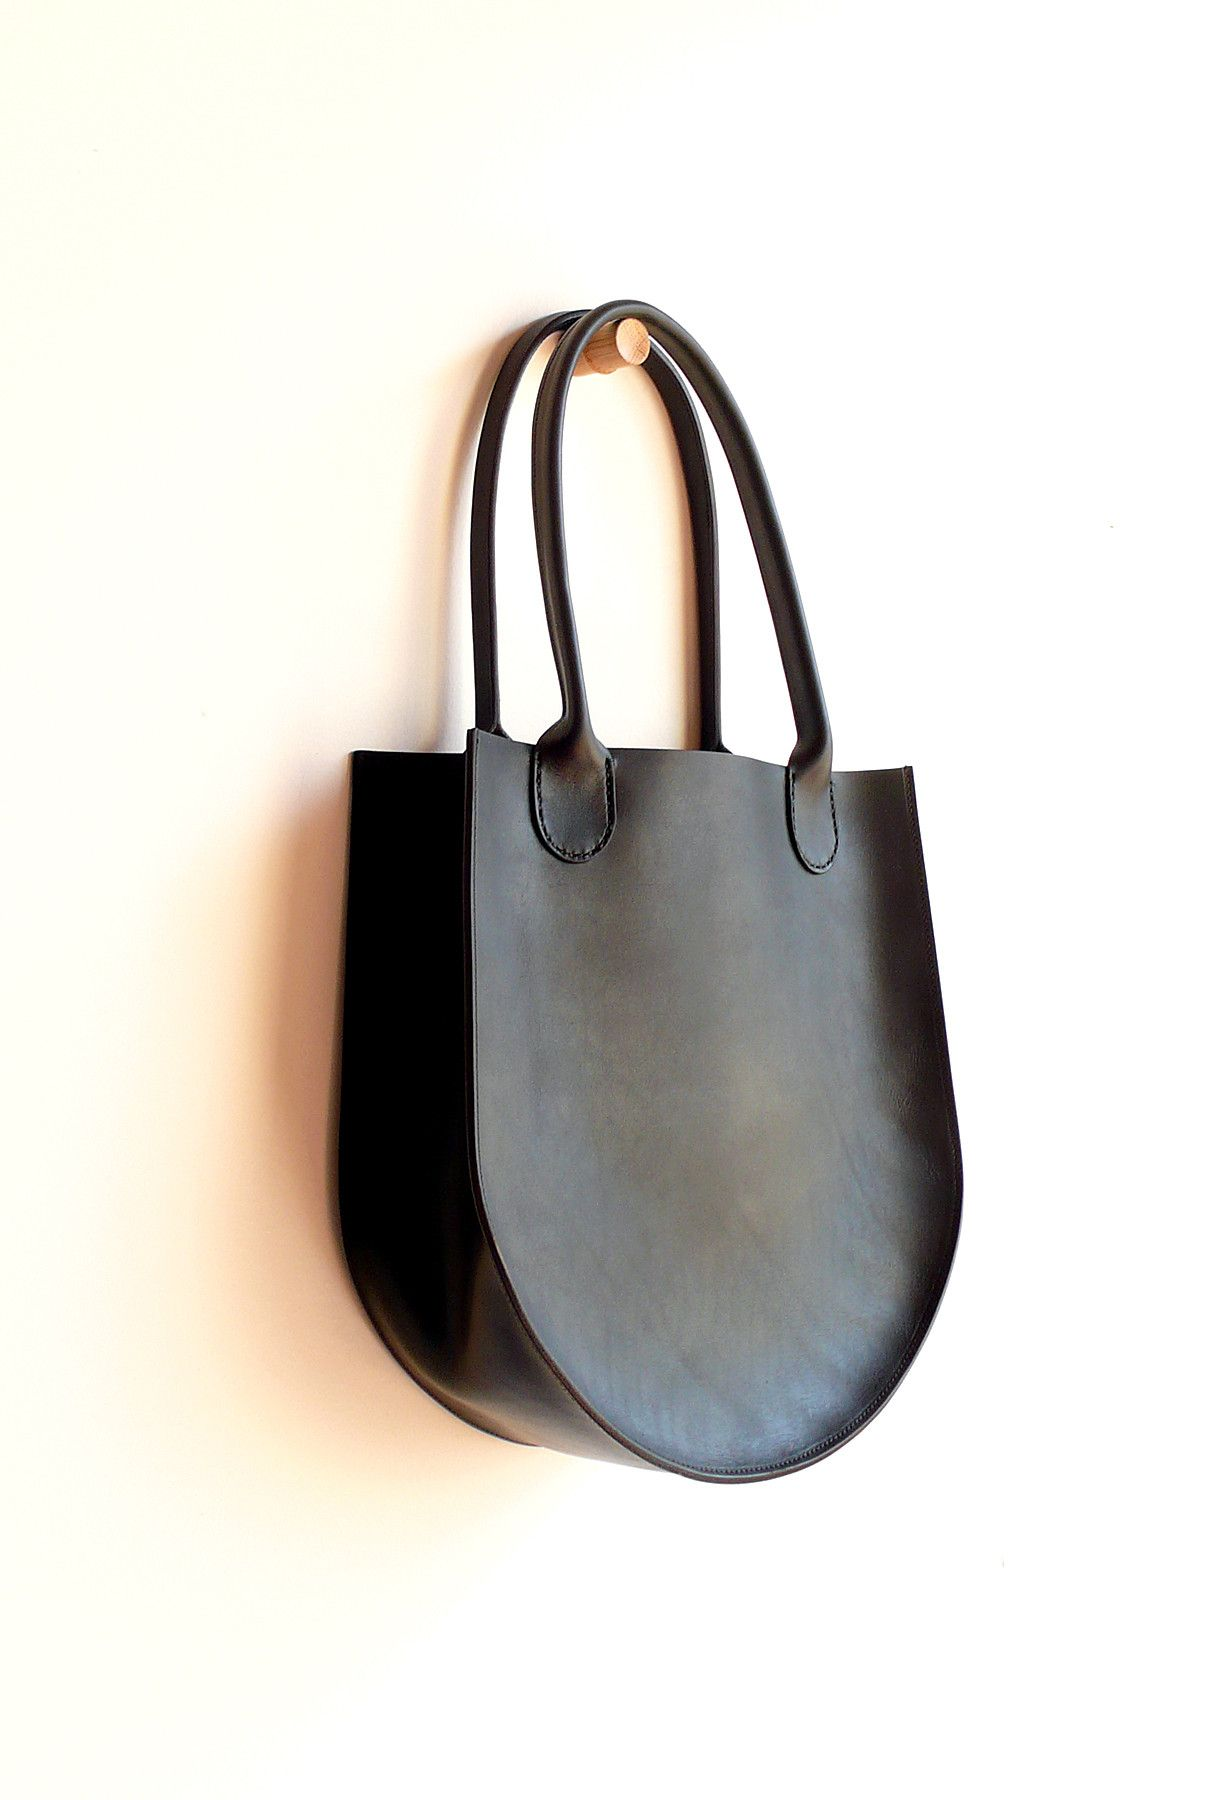 Sara Barner Leather Russell Tote Black 13 x 14 x 5 in